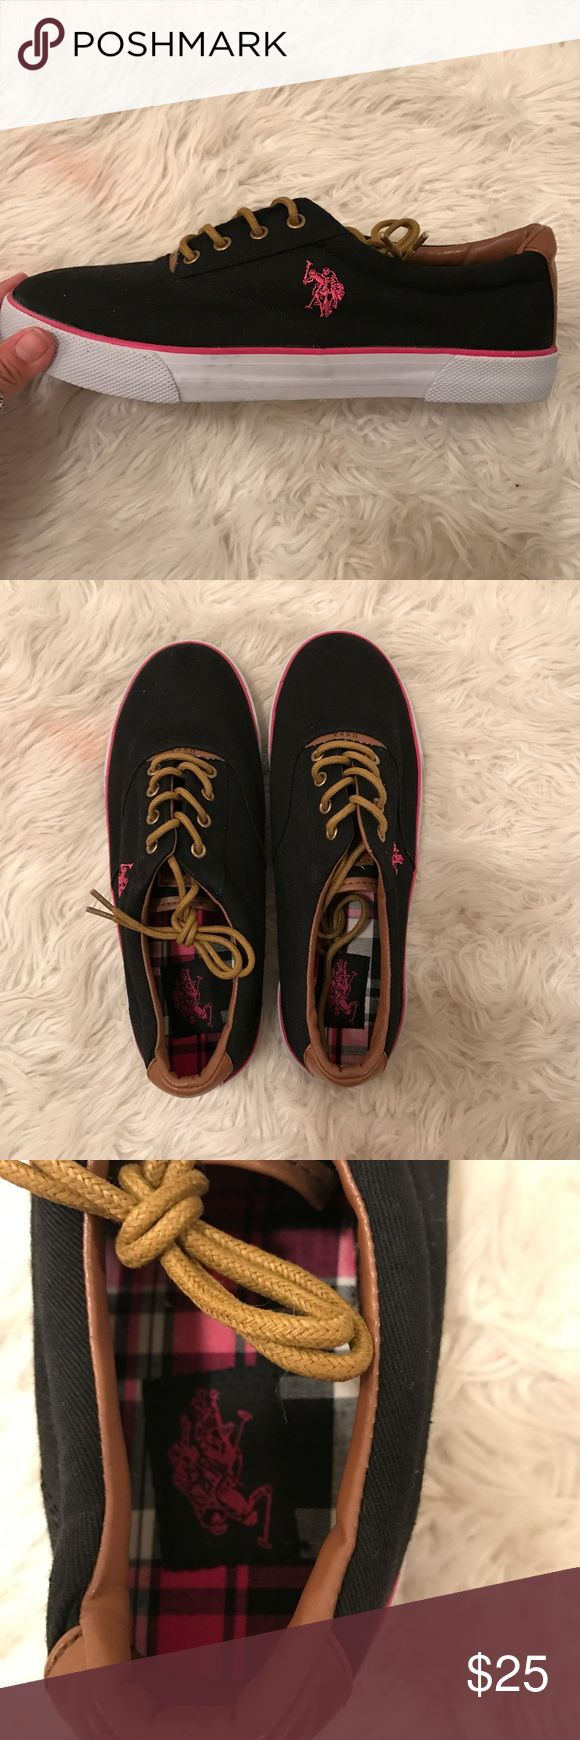 Polo Ralph Lauren Shoes NWOT Black shoes with pink detailing, and a white bottom These shoes were never worn, I bought them a size too big for me! Size 8.5 Polo by Ralph Lauren Shoes Sneakers